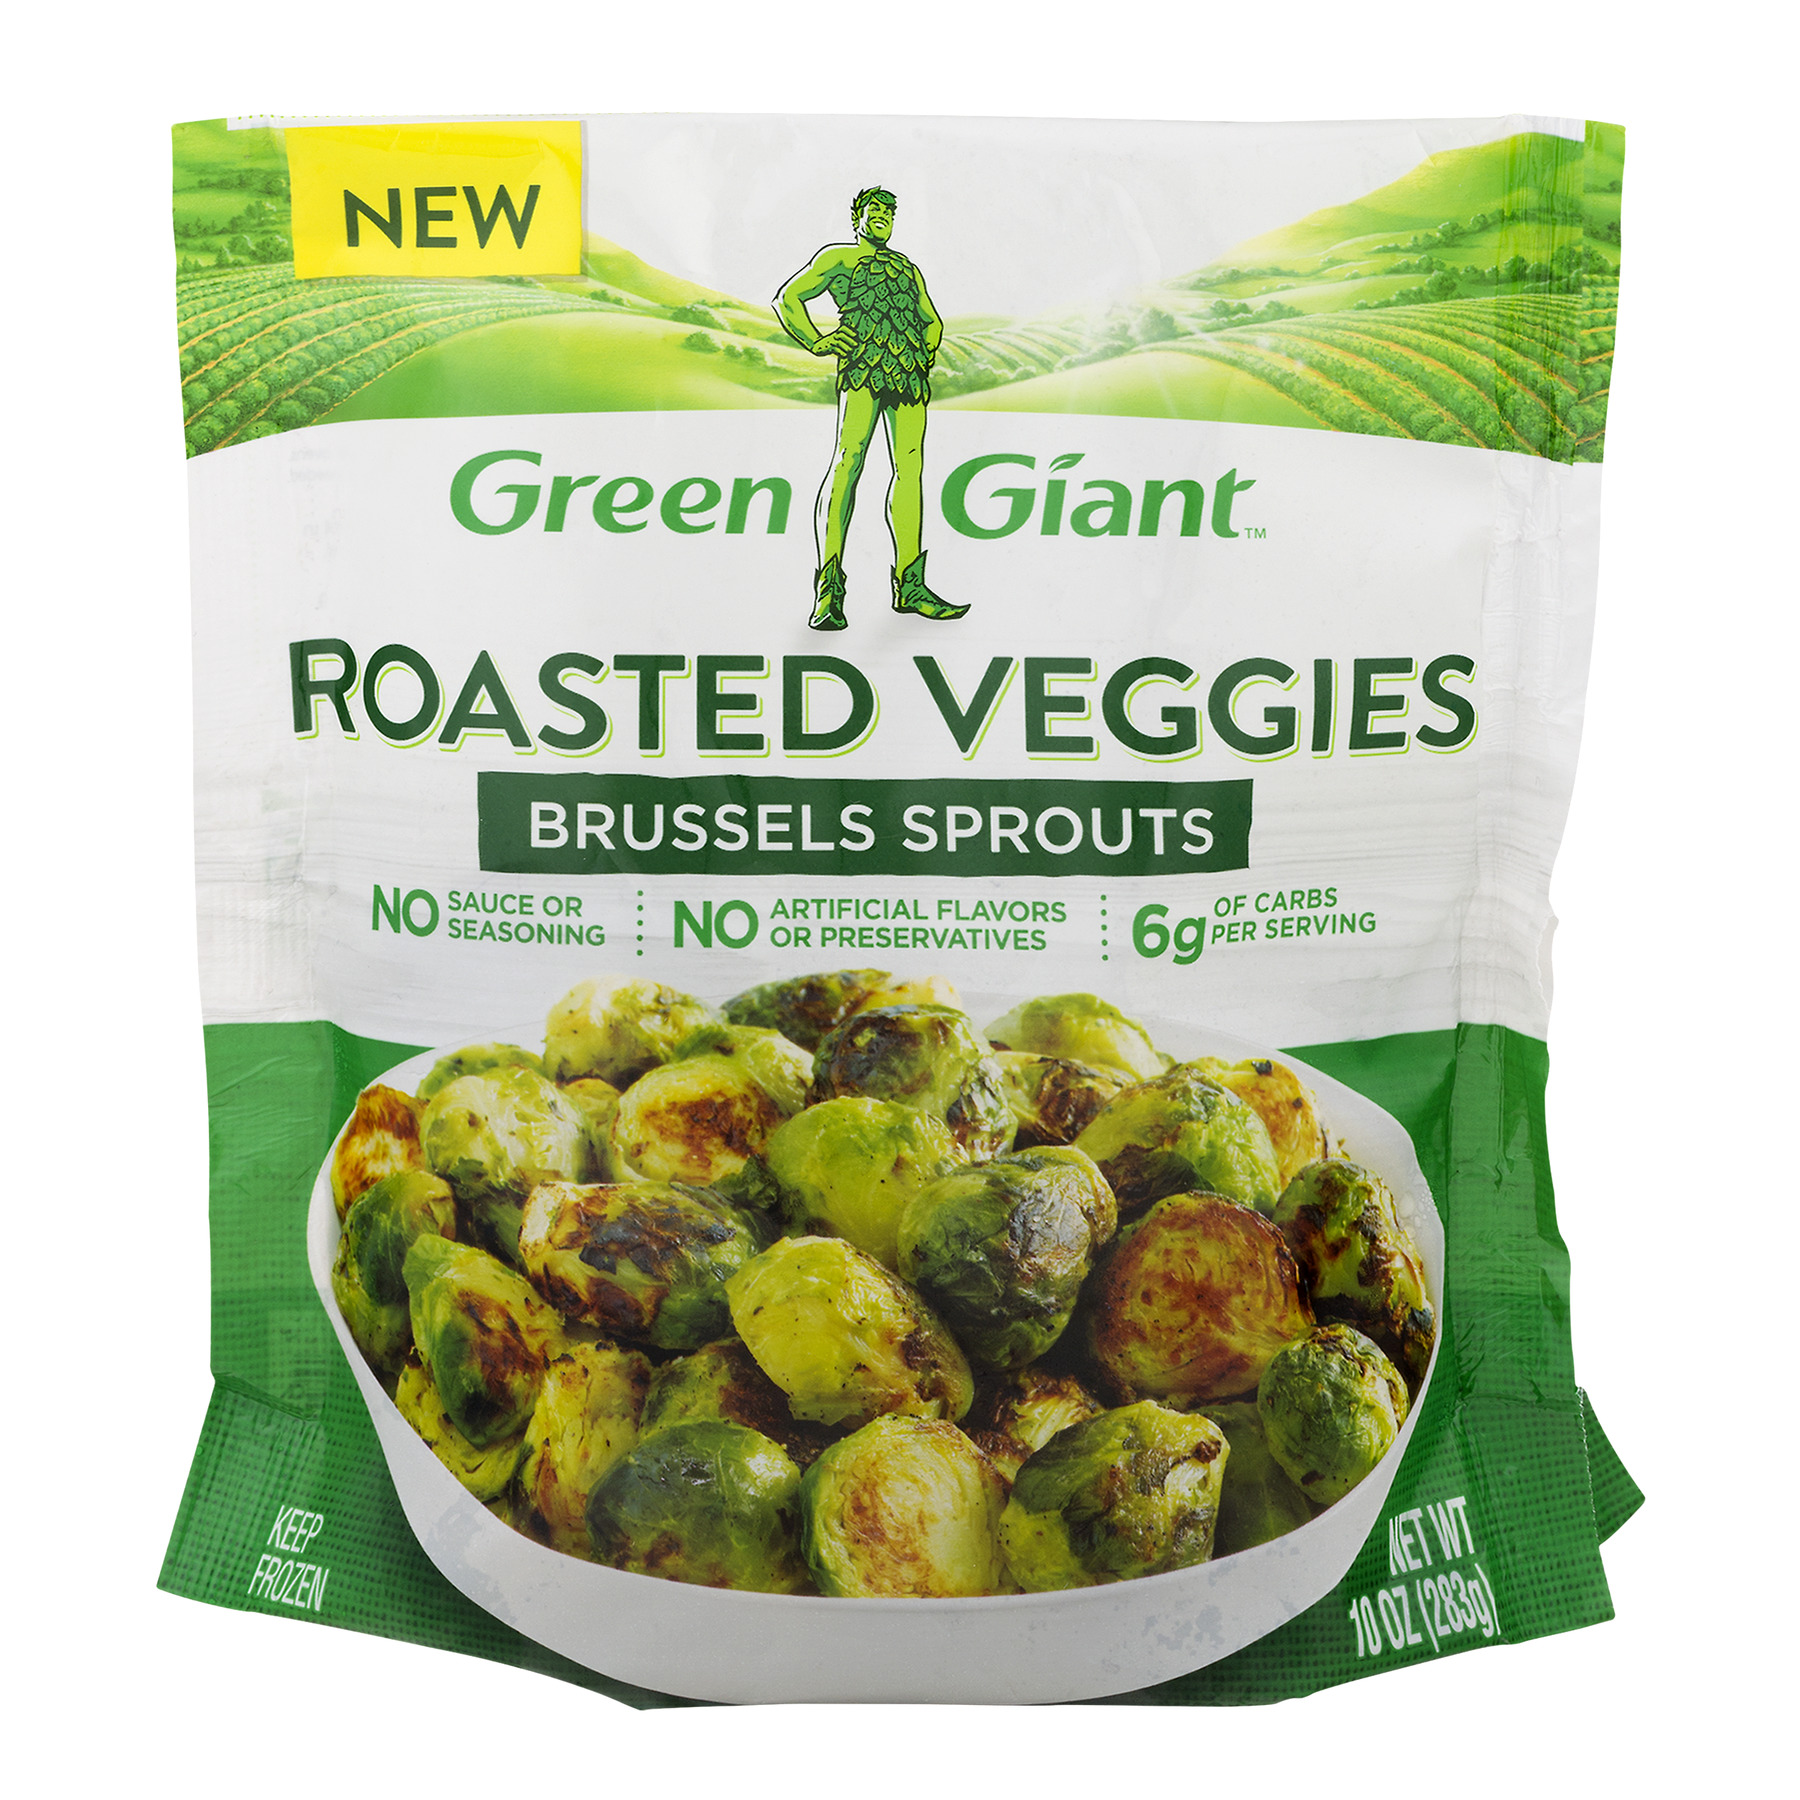 Green Giant Roasted Veggies Brussels Sprouts, 10.0 OZ